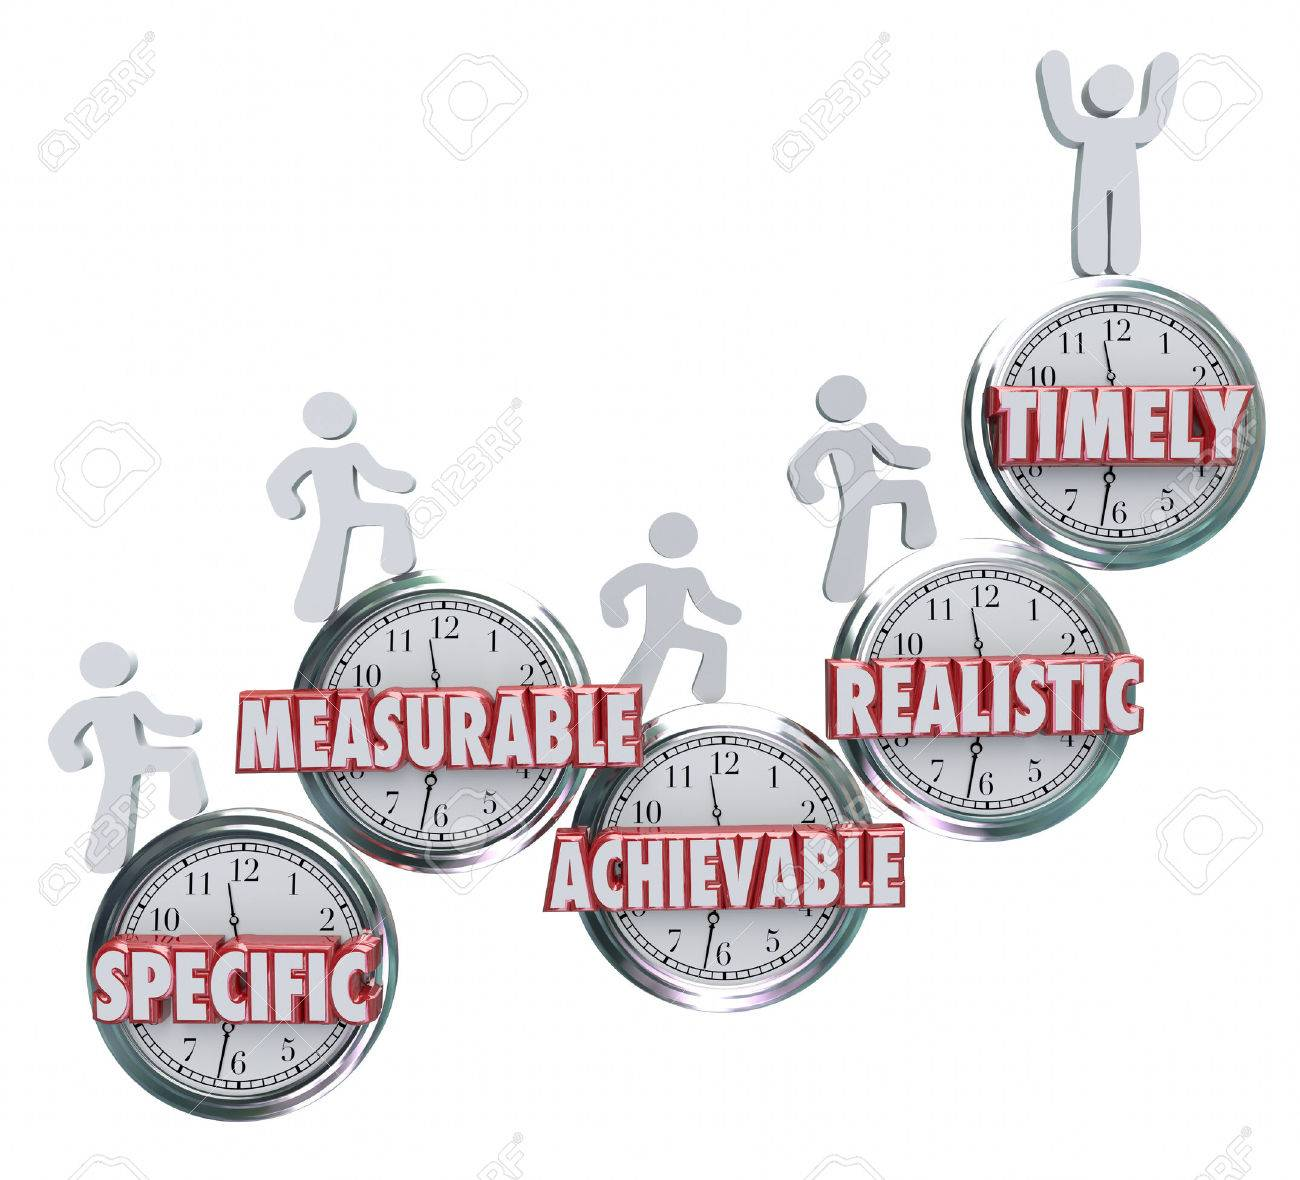 smart acronym or abbreviation on clocks to illustrate goals or smart acronym or abbreviation on clocks to illustrate goals or objectives that are specific measurable